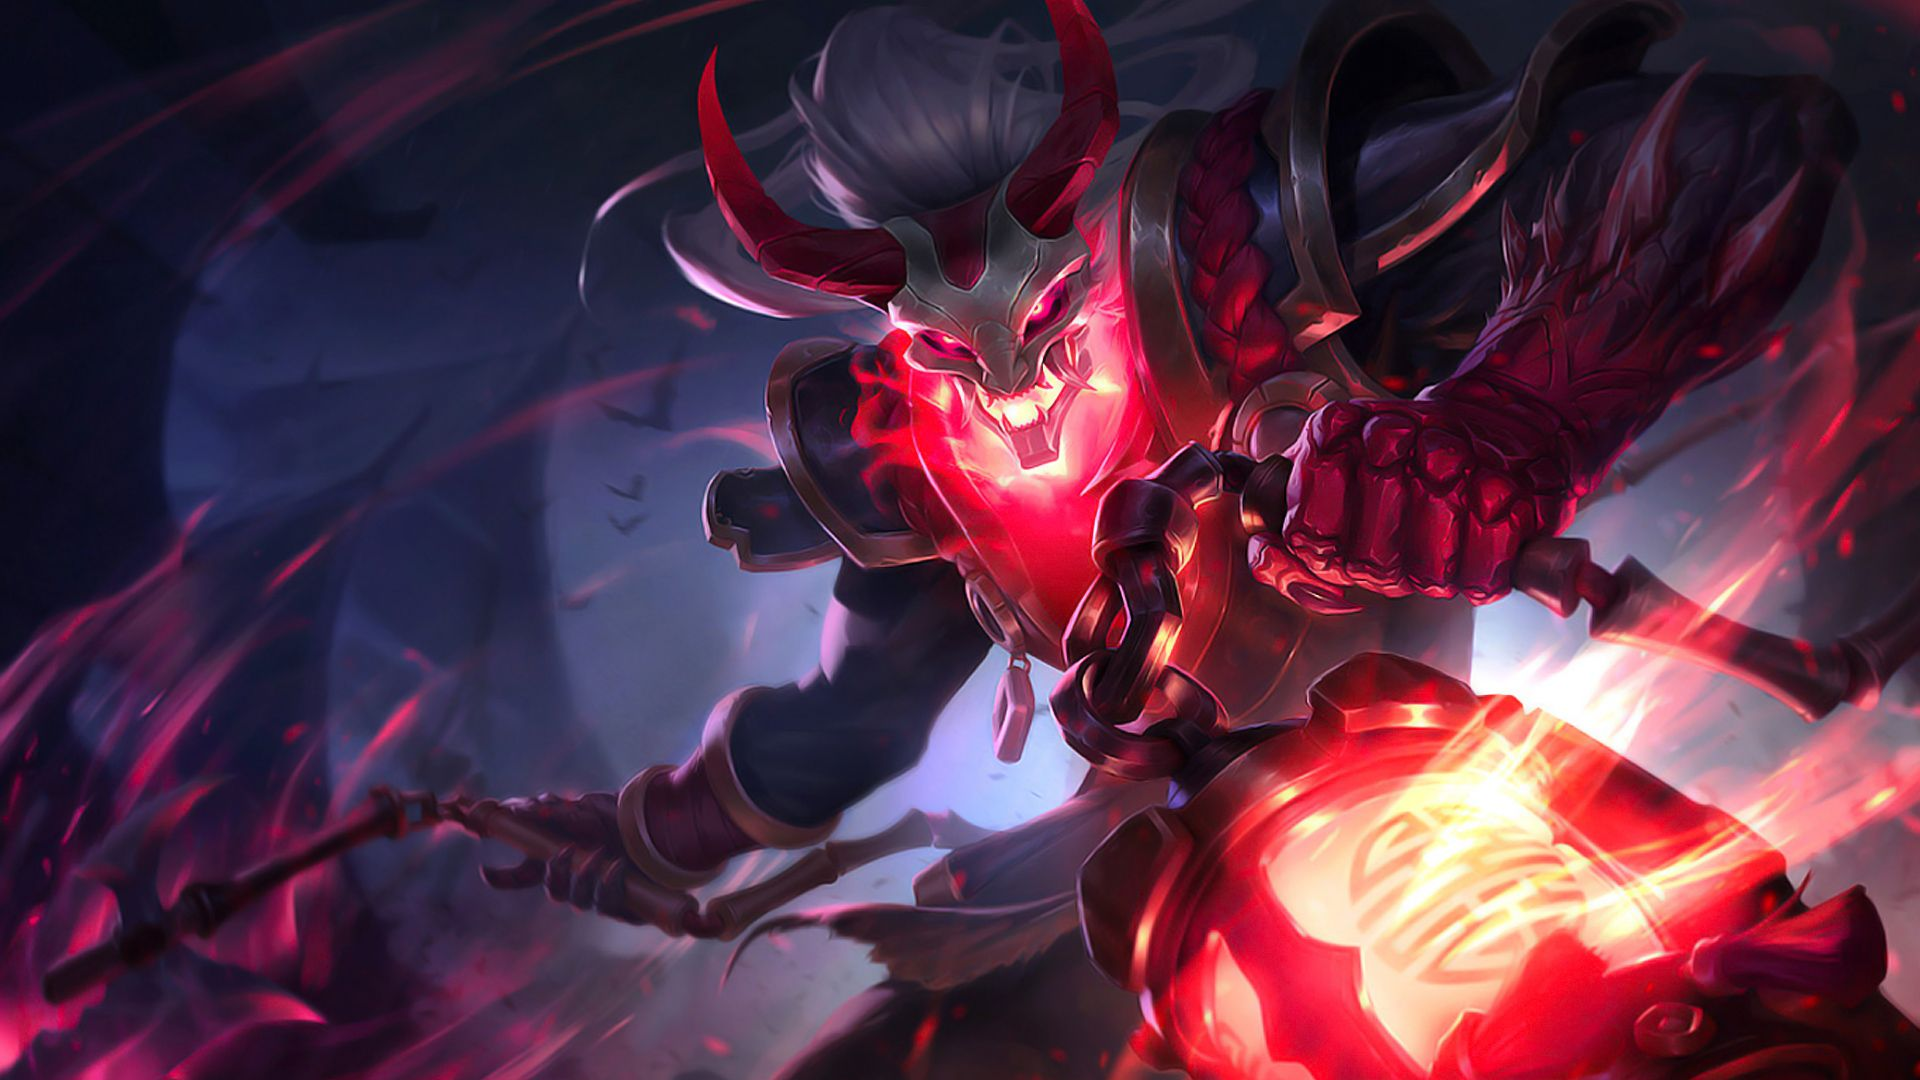 Full Size And Download Wallskip Wallpapers Hd Lol League Of Legends League Of Legends League Of Legends Characters